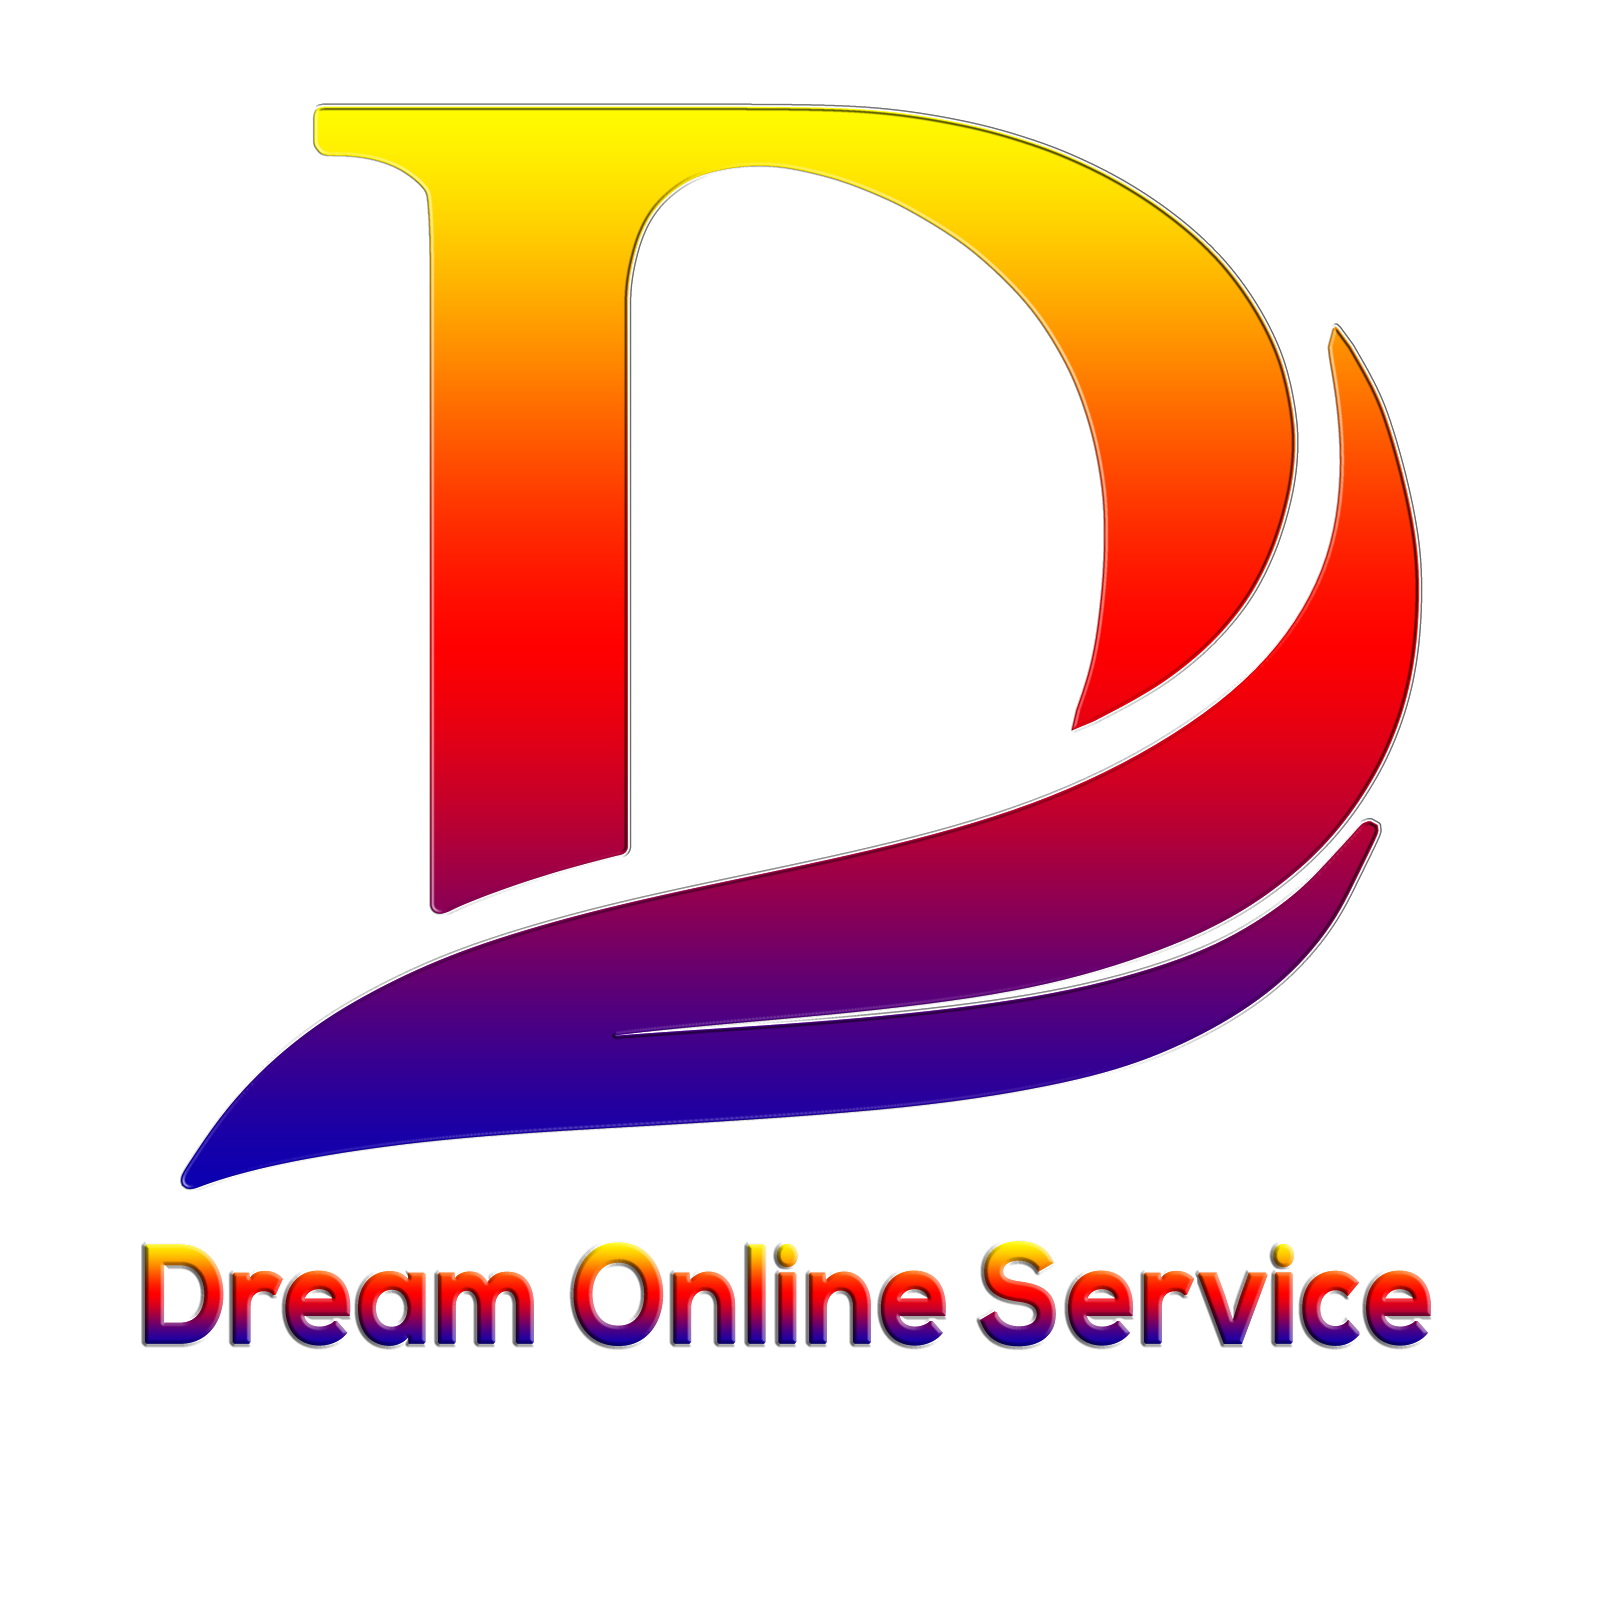 Dream Online Service's